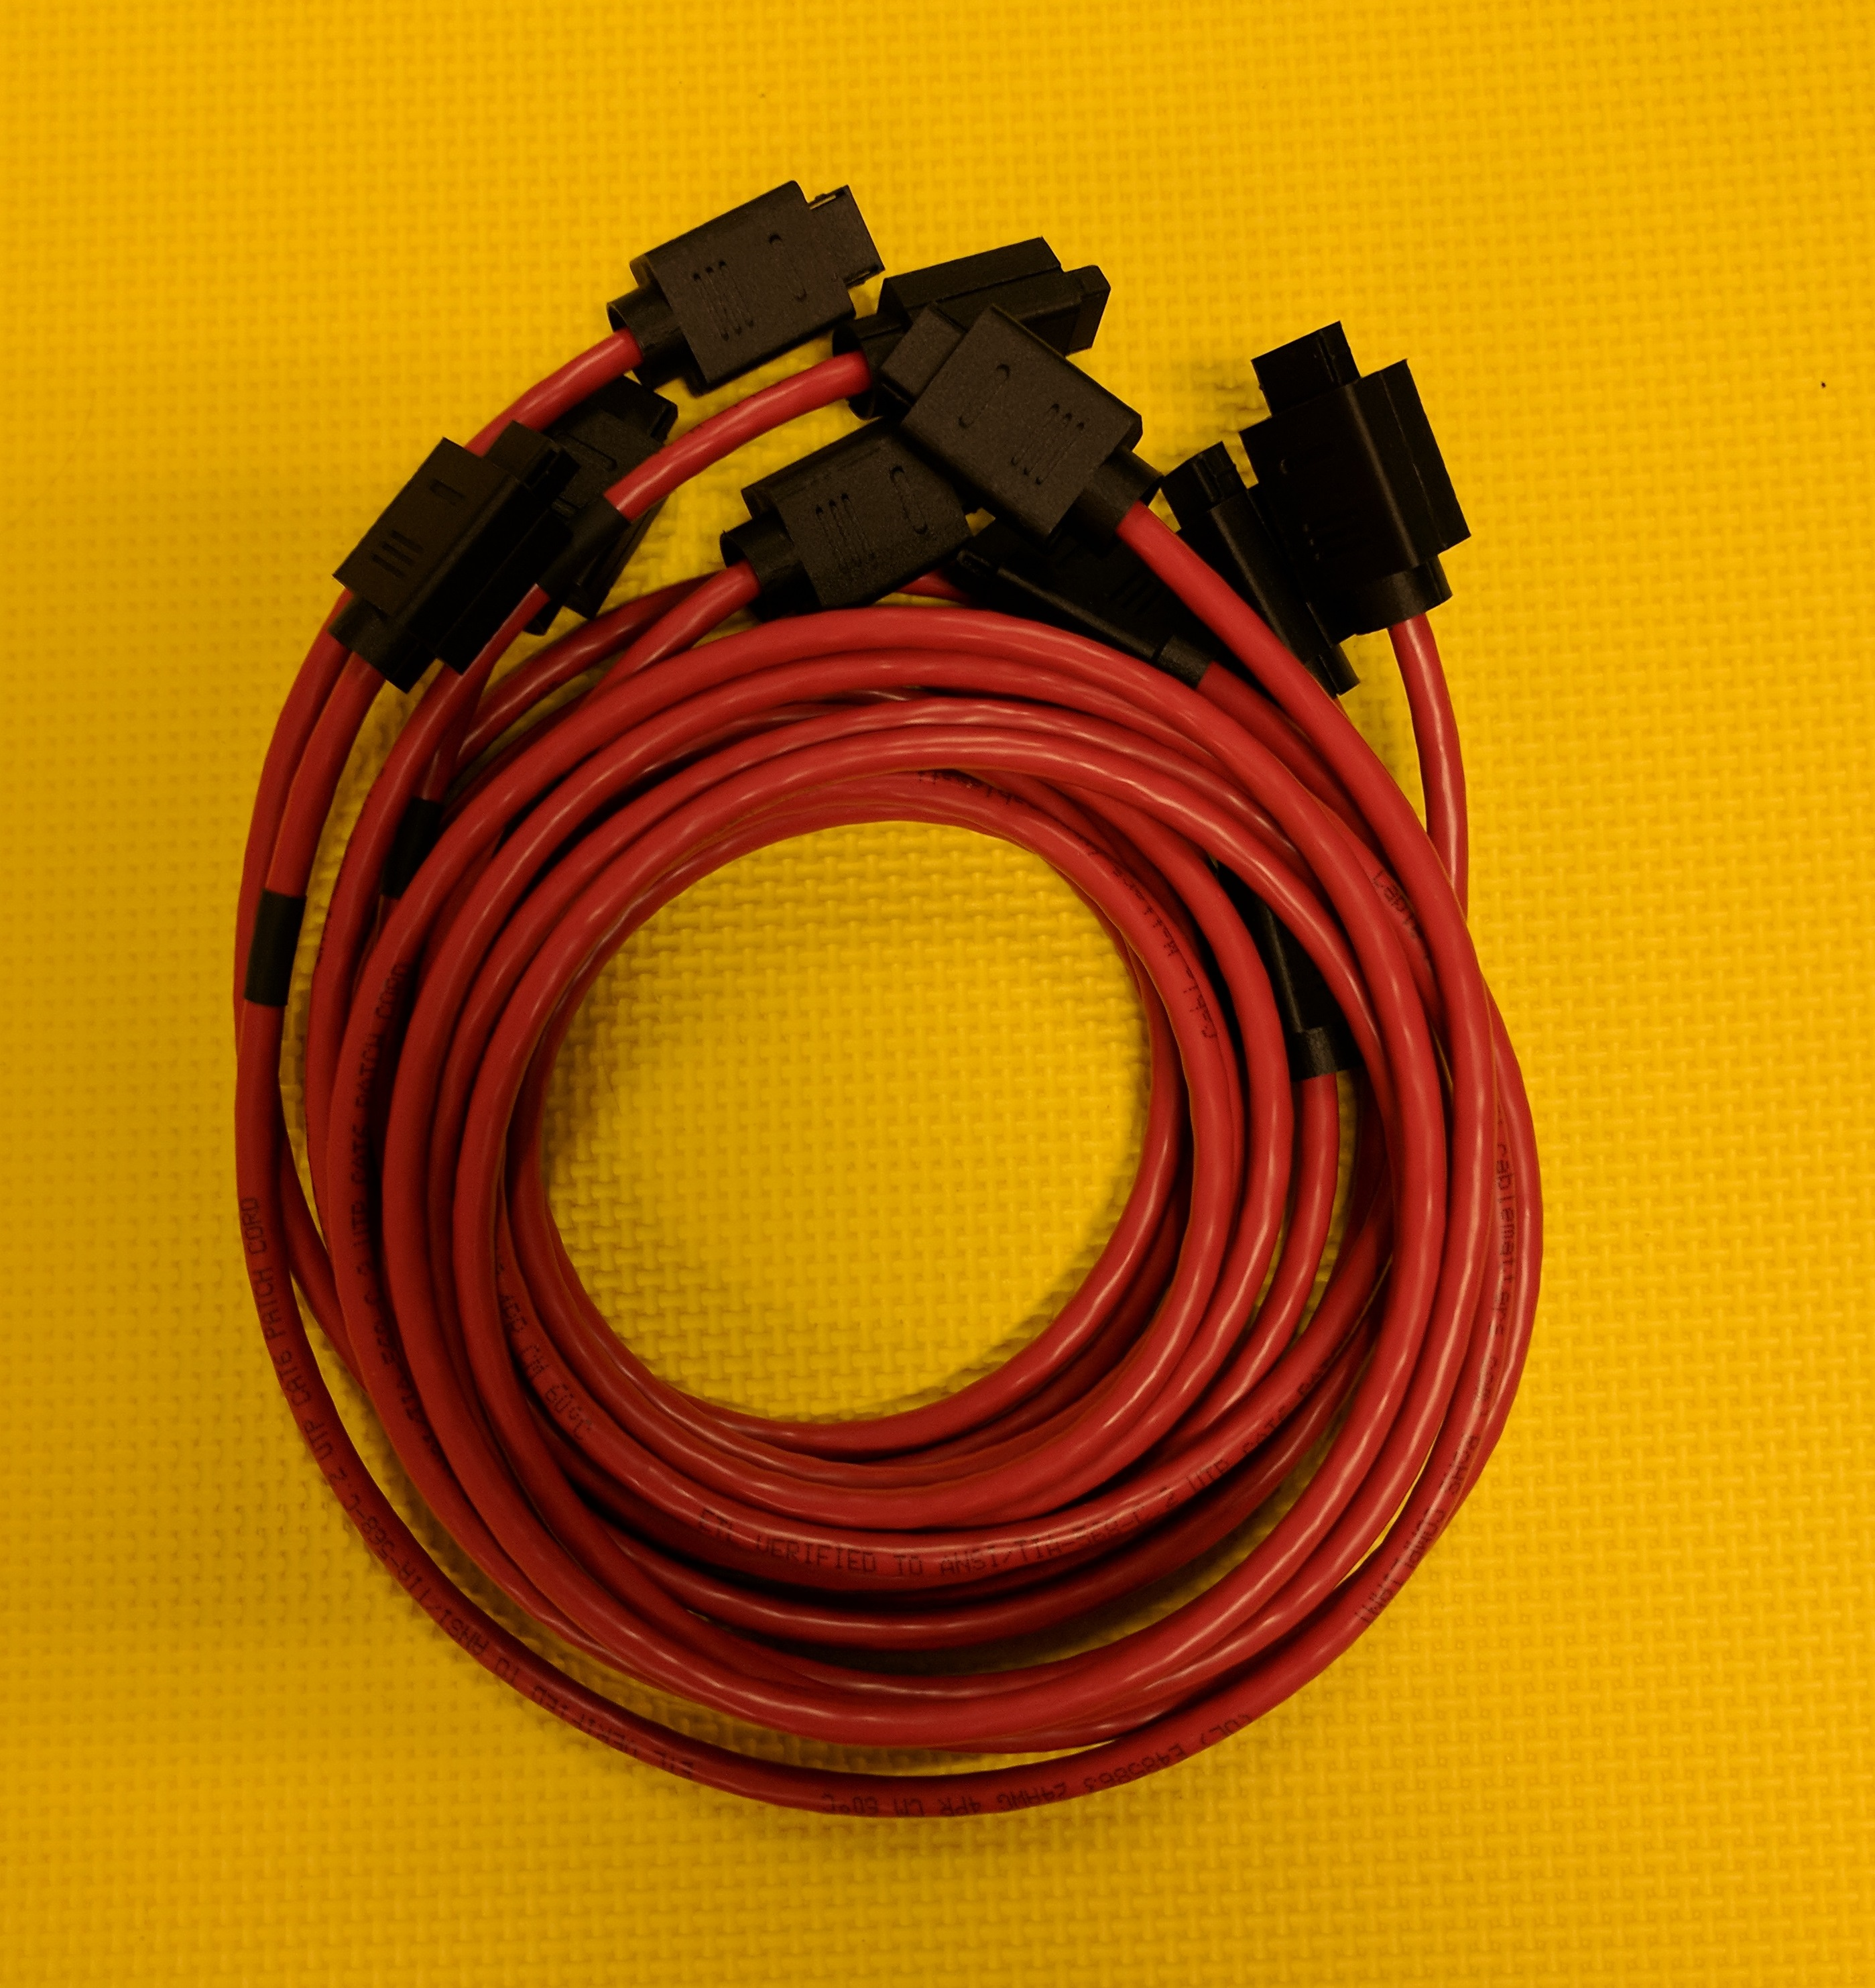 Virtual Boy Wired Link Cable Build